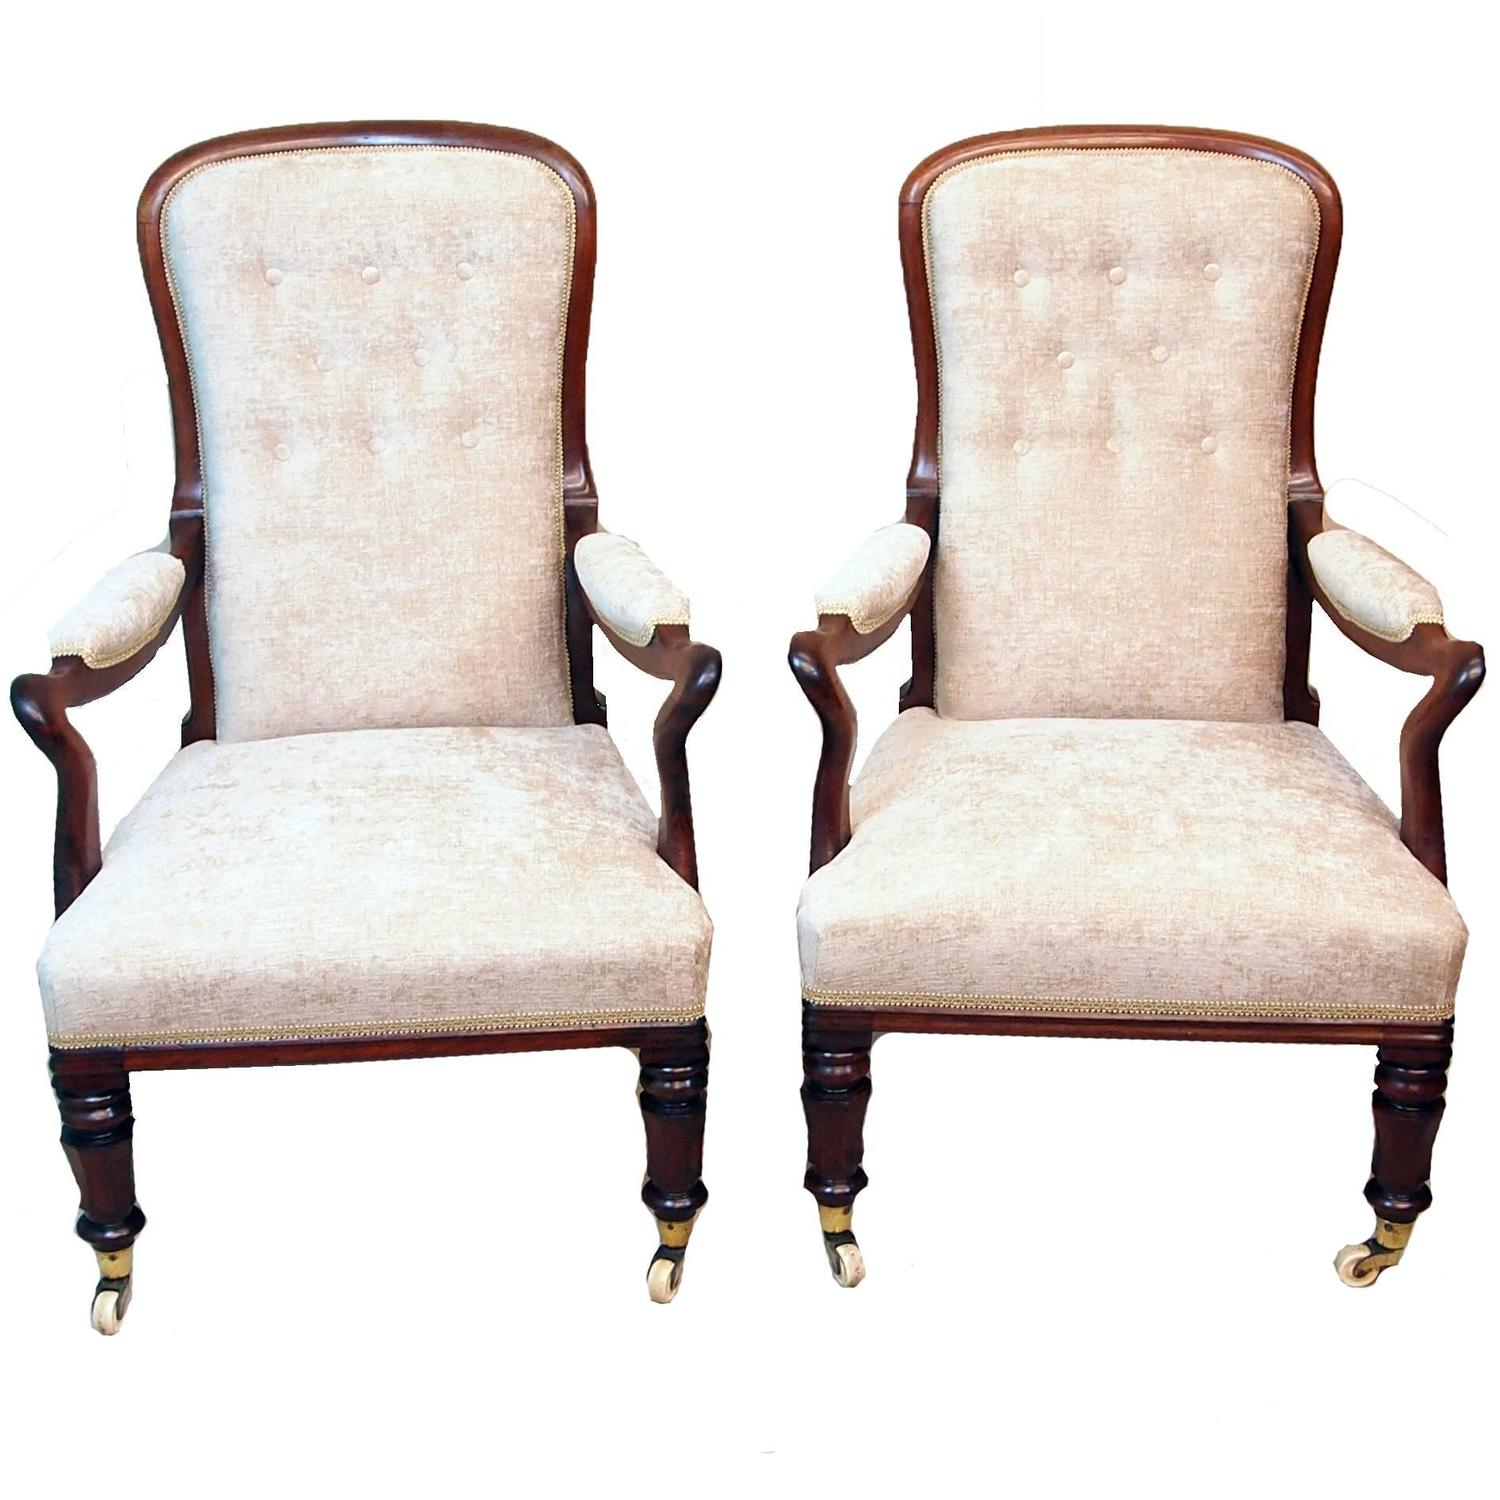 Antique Pair Of Rosewood Library Armchairs For Sale At 1stdibs